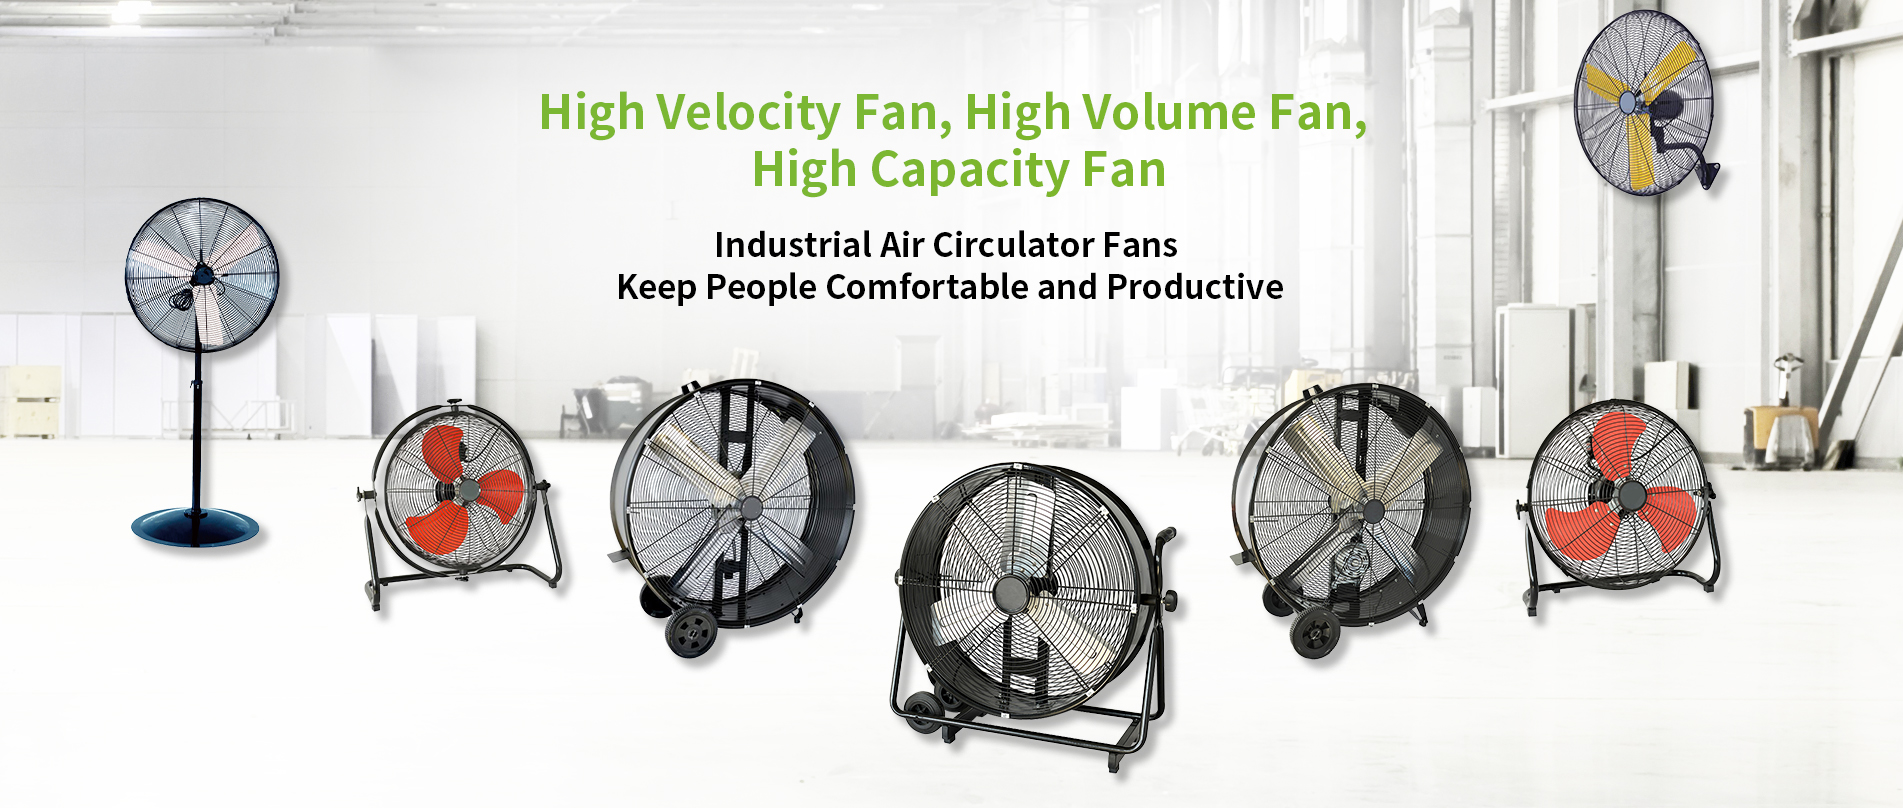 WINMORE Industrial Fans